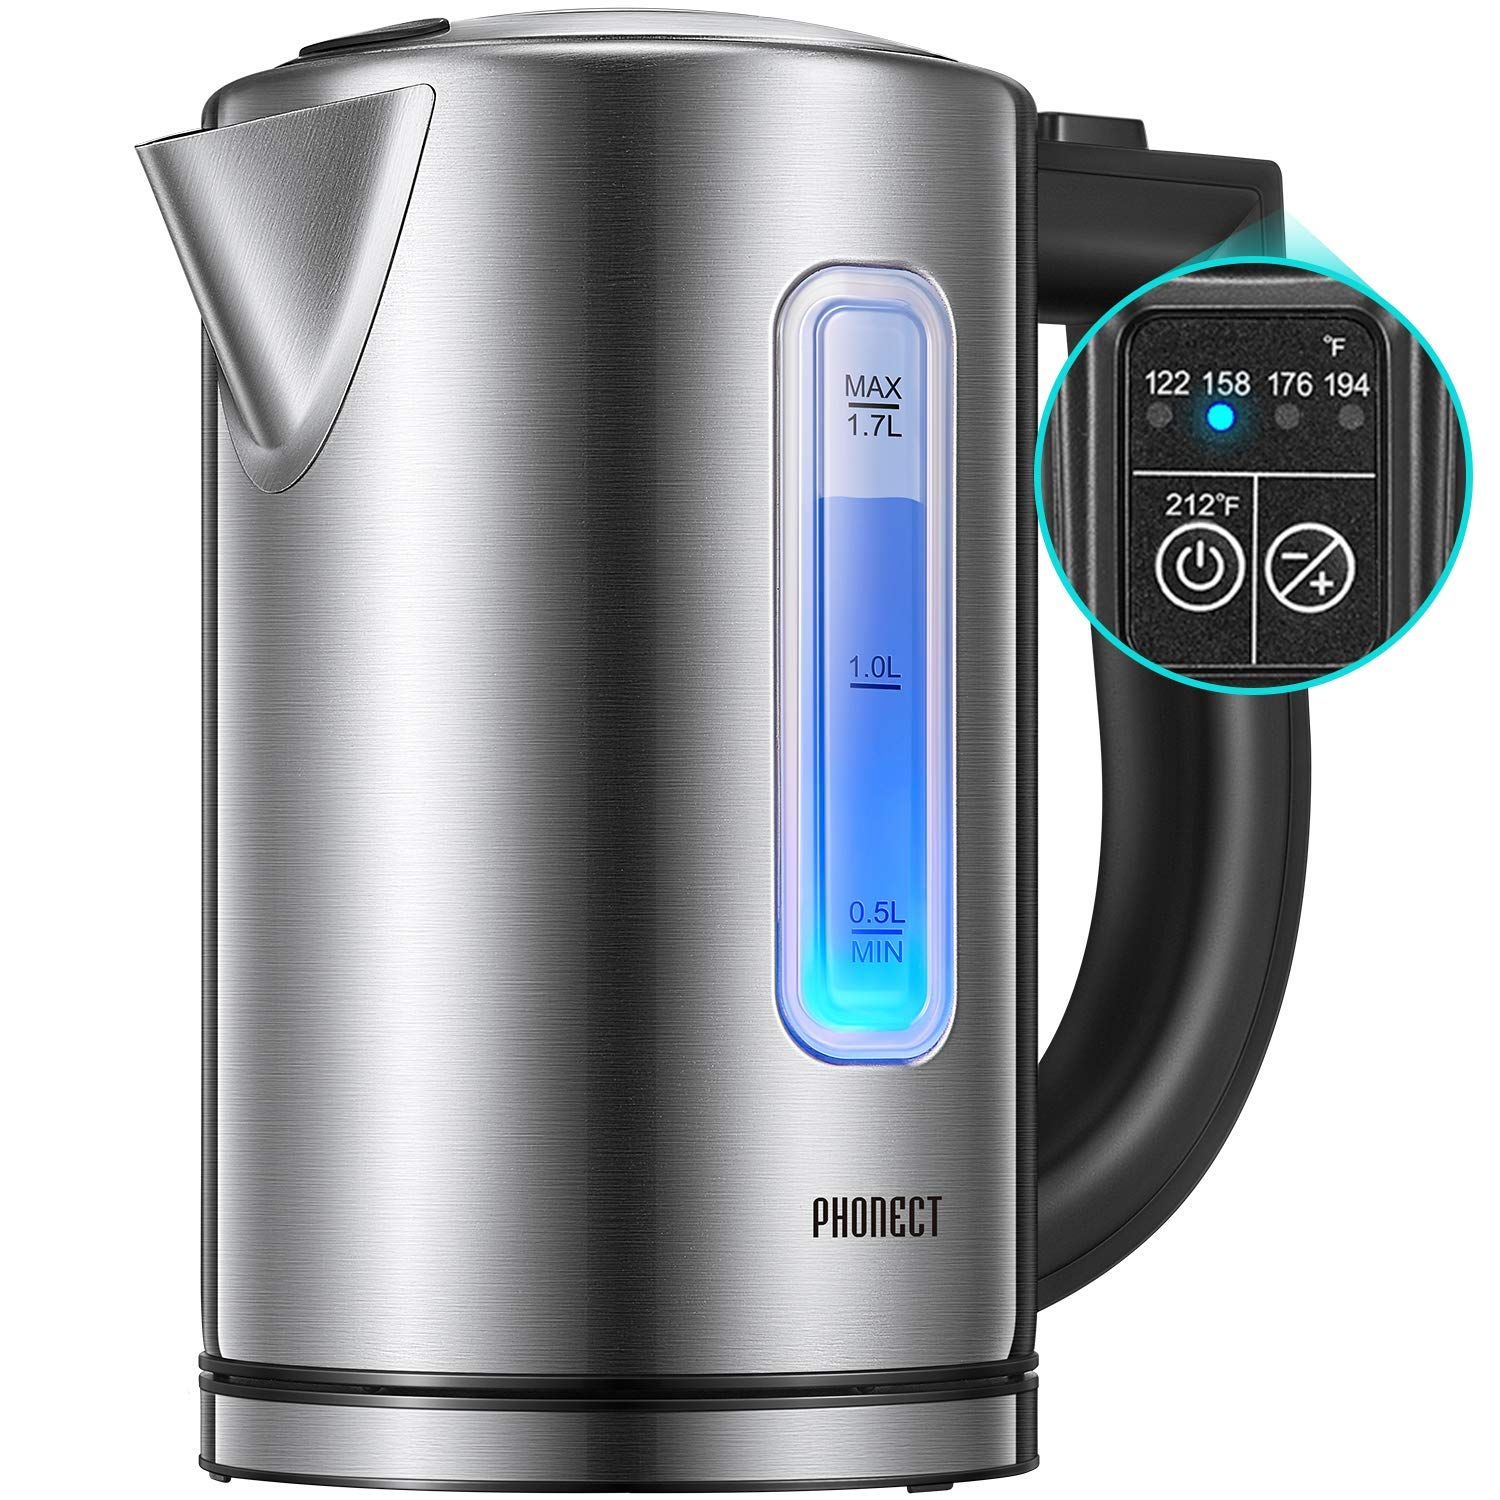 Electric Kettle Temperature Control, 1500W Ultra Fast Water Boiler Cordless Electric Water Heater Kettle with LED Indicator Light, 100 BPA free Window Lid and Gauge, 304 Stainless Steel Kettle ,1.7L, 2 Year Warranty, by Phonect